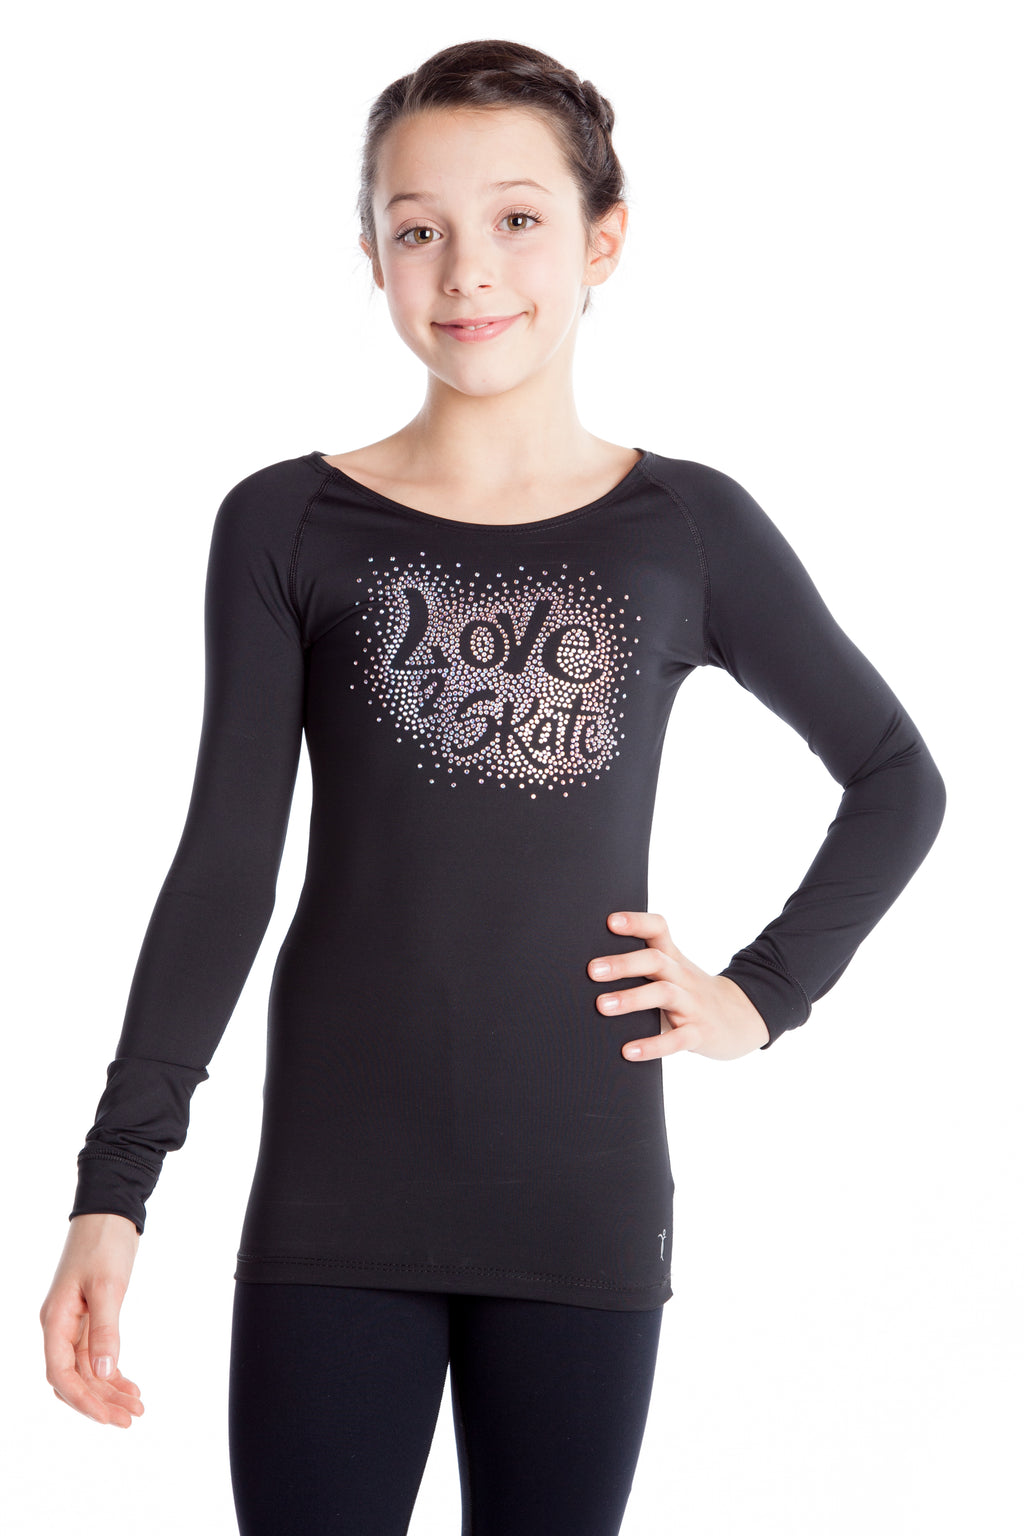 Love 2 SKate Bling Xpression Top - House of Skates